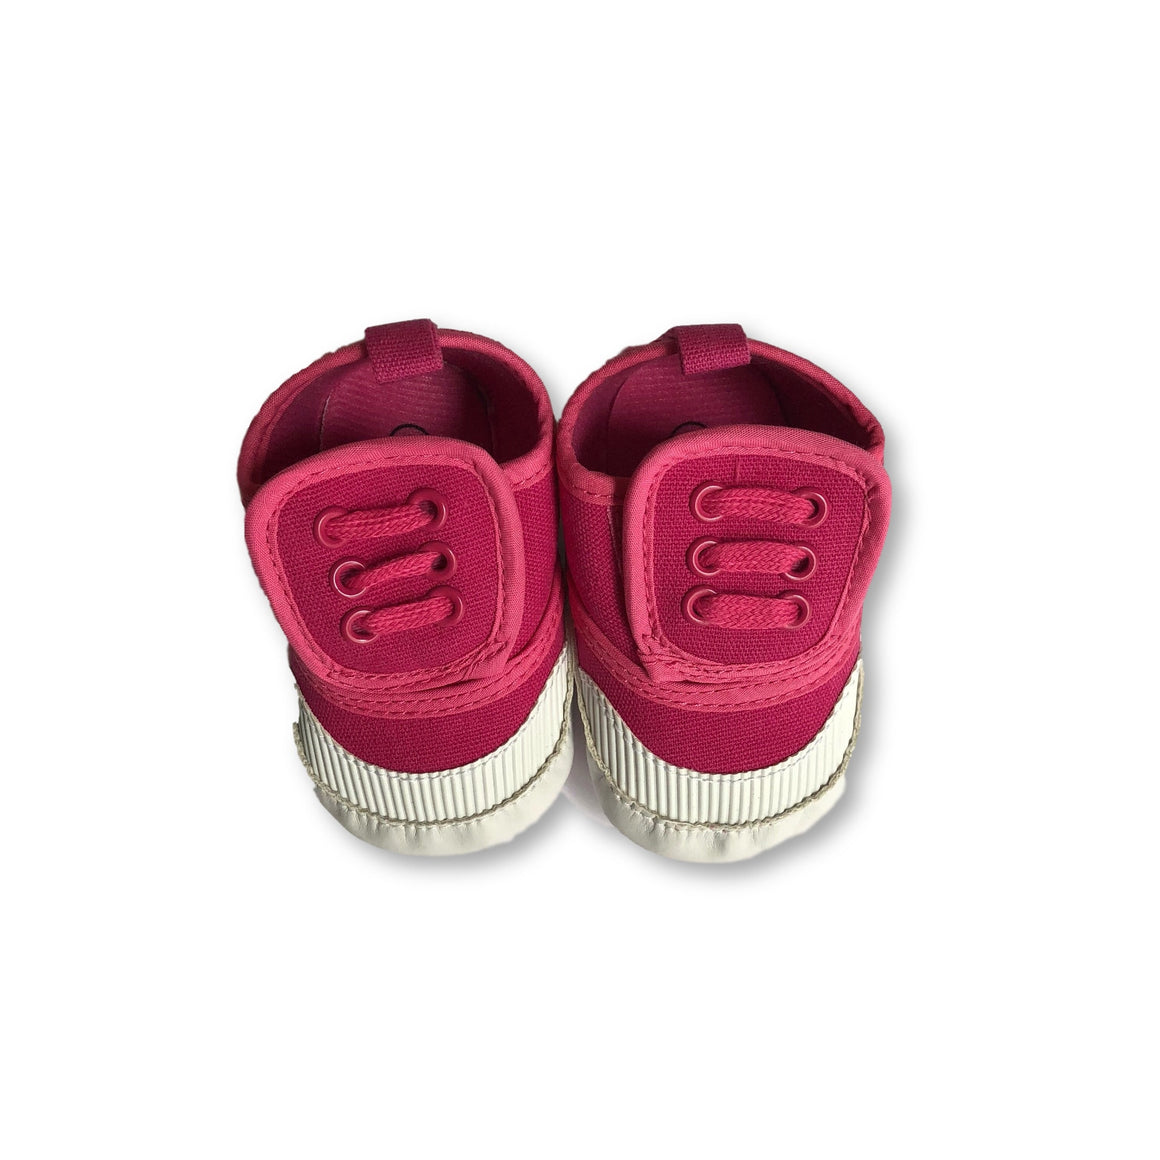 Hot Pink Soft Sole Sneakers